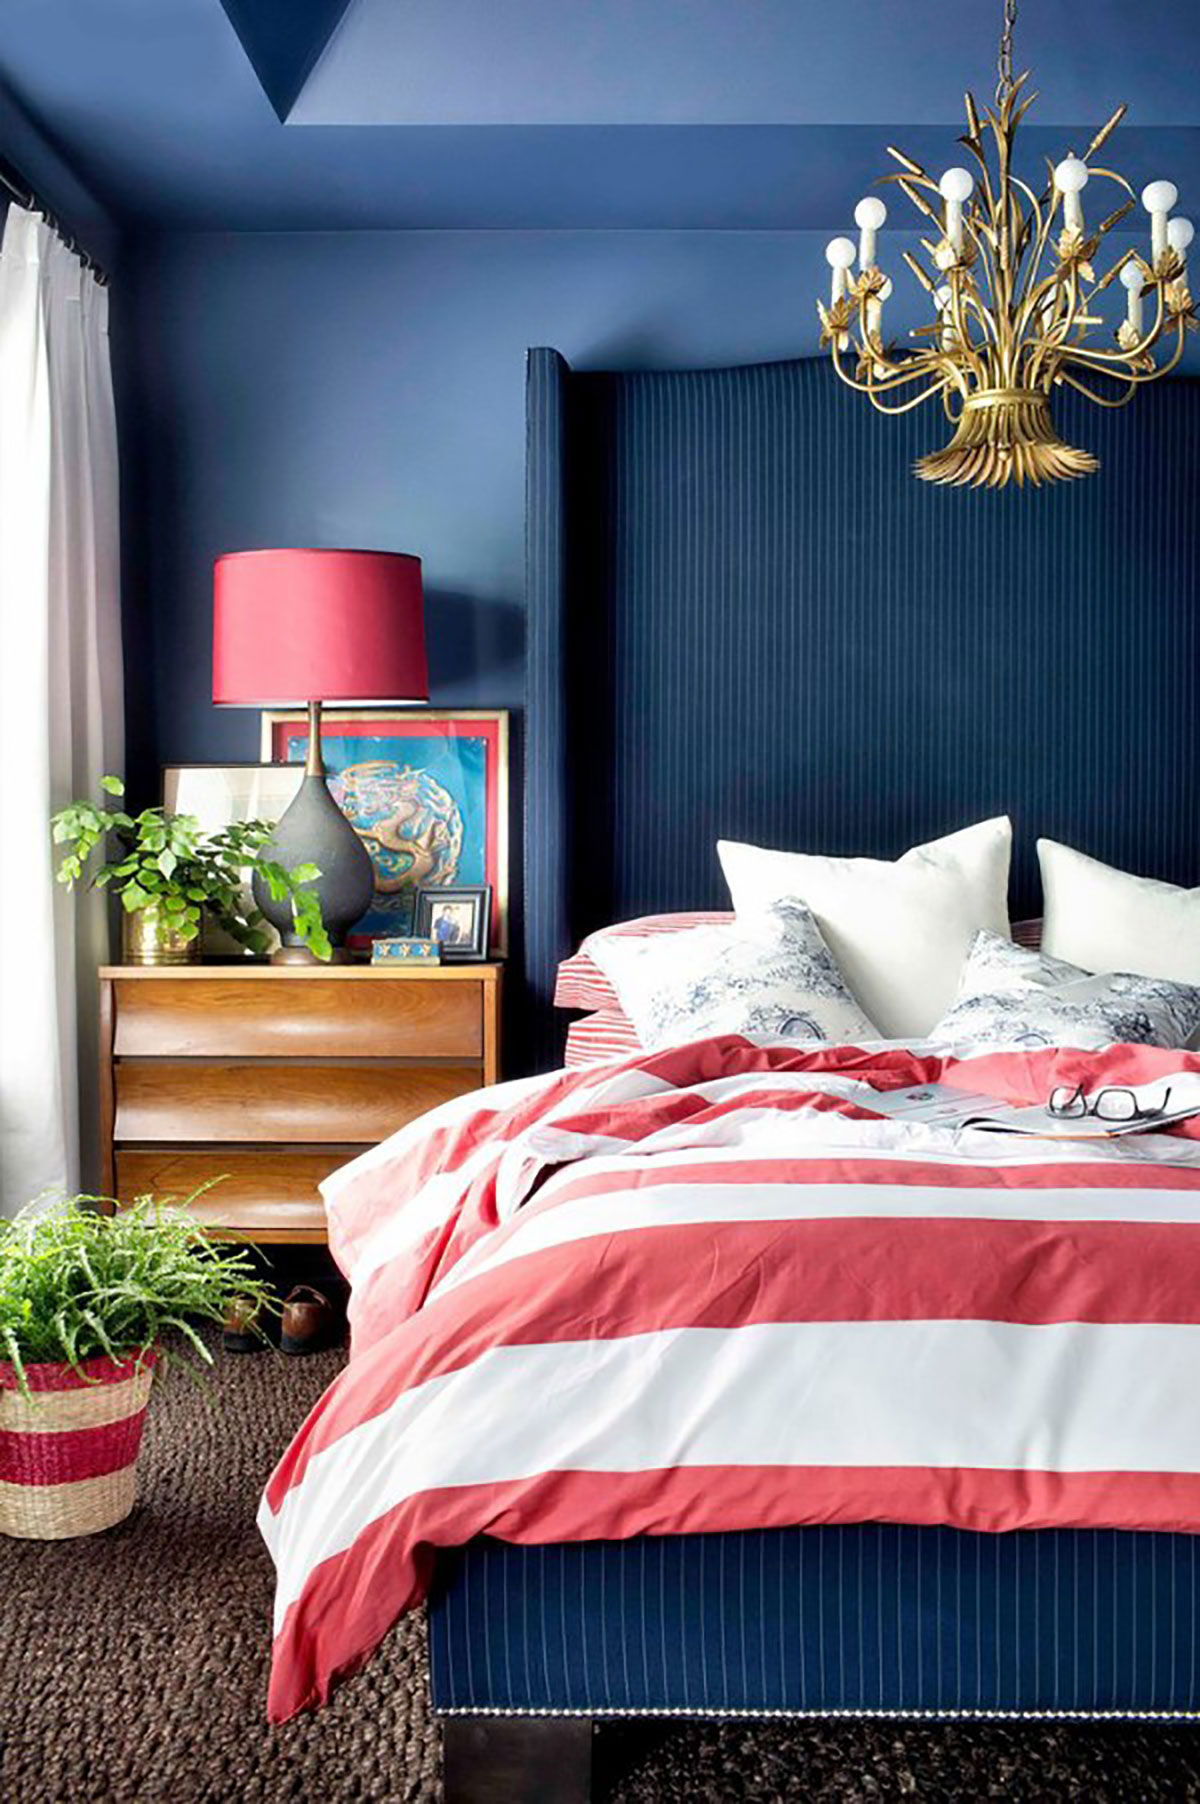 10 Chic Ways to Decorate in Red, White and Blue 4th July Decoration